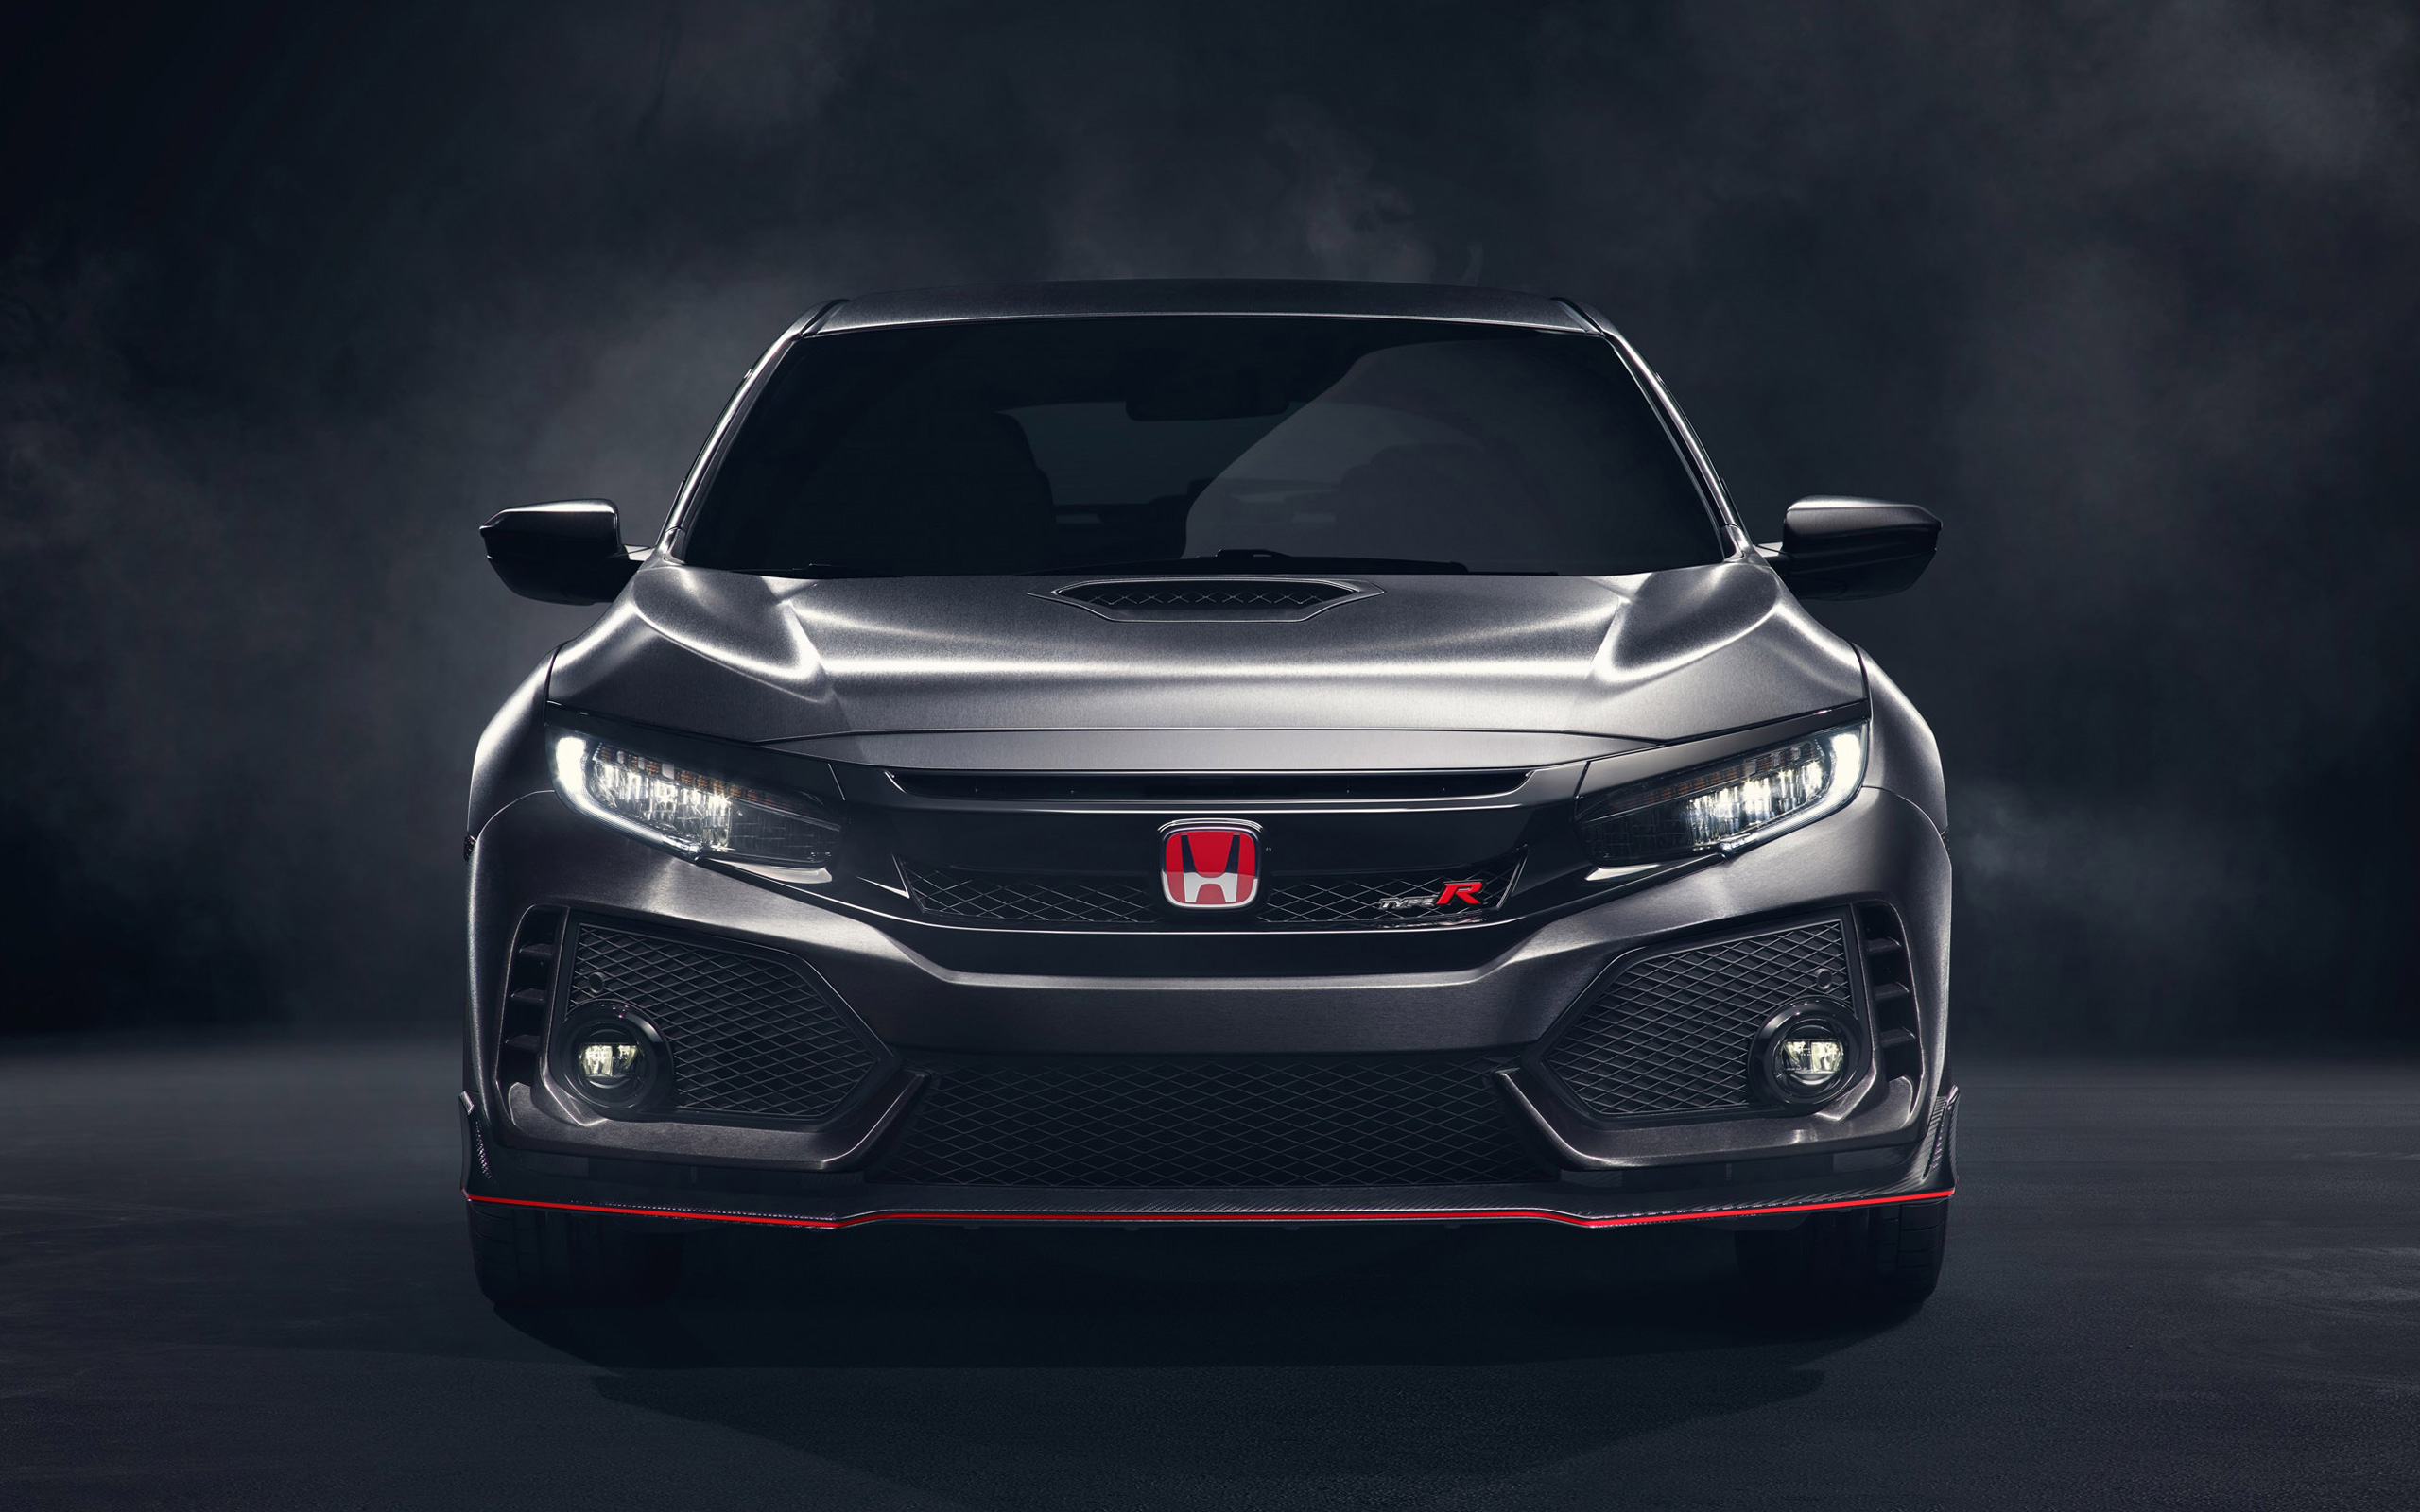 Car Wallpaper 8k 2017 Honda Civic Type R Wallpaper Hd Car Wallpapers Id